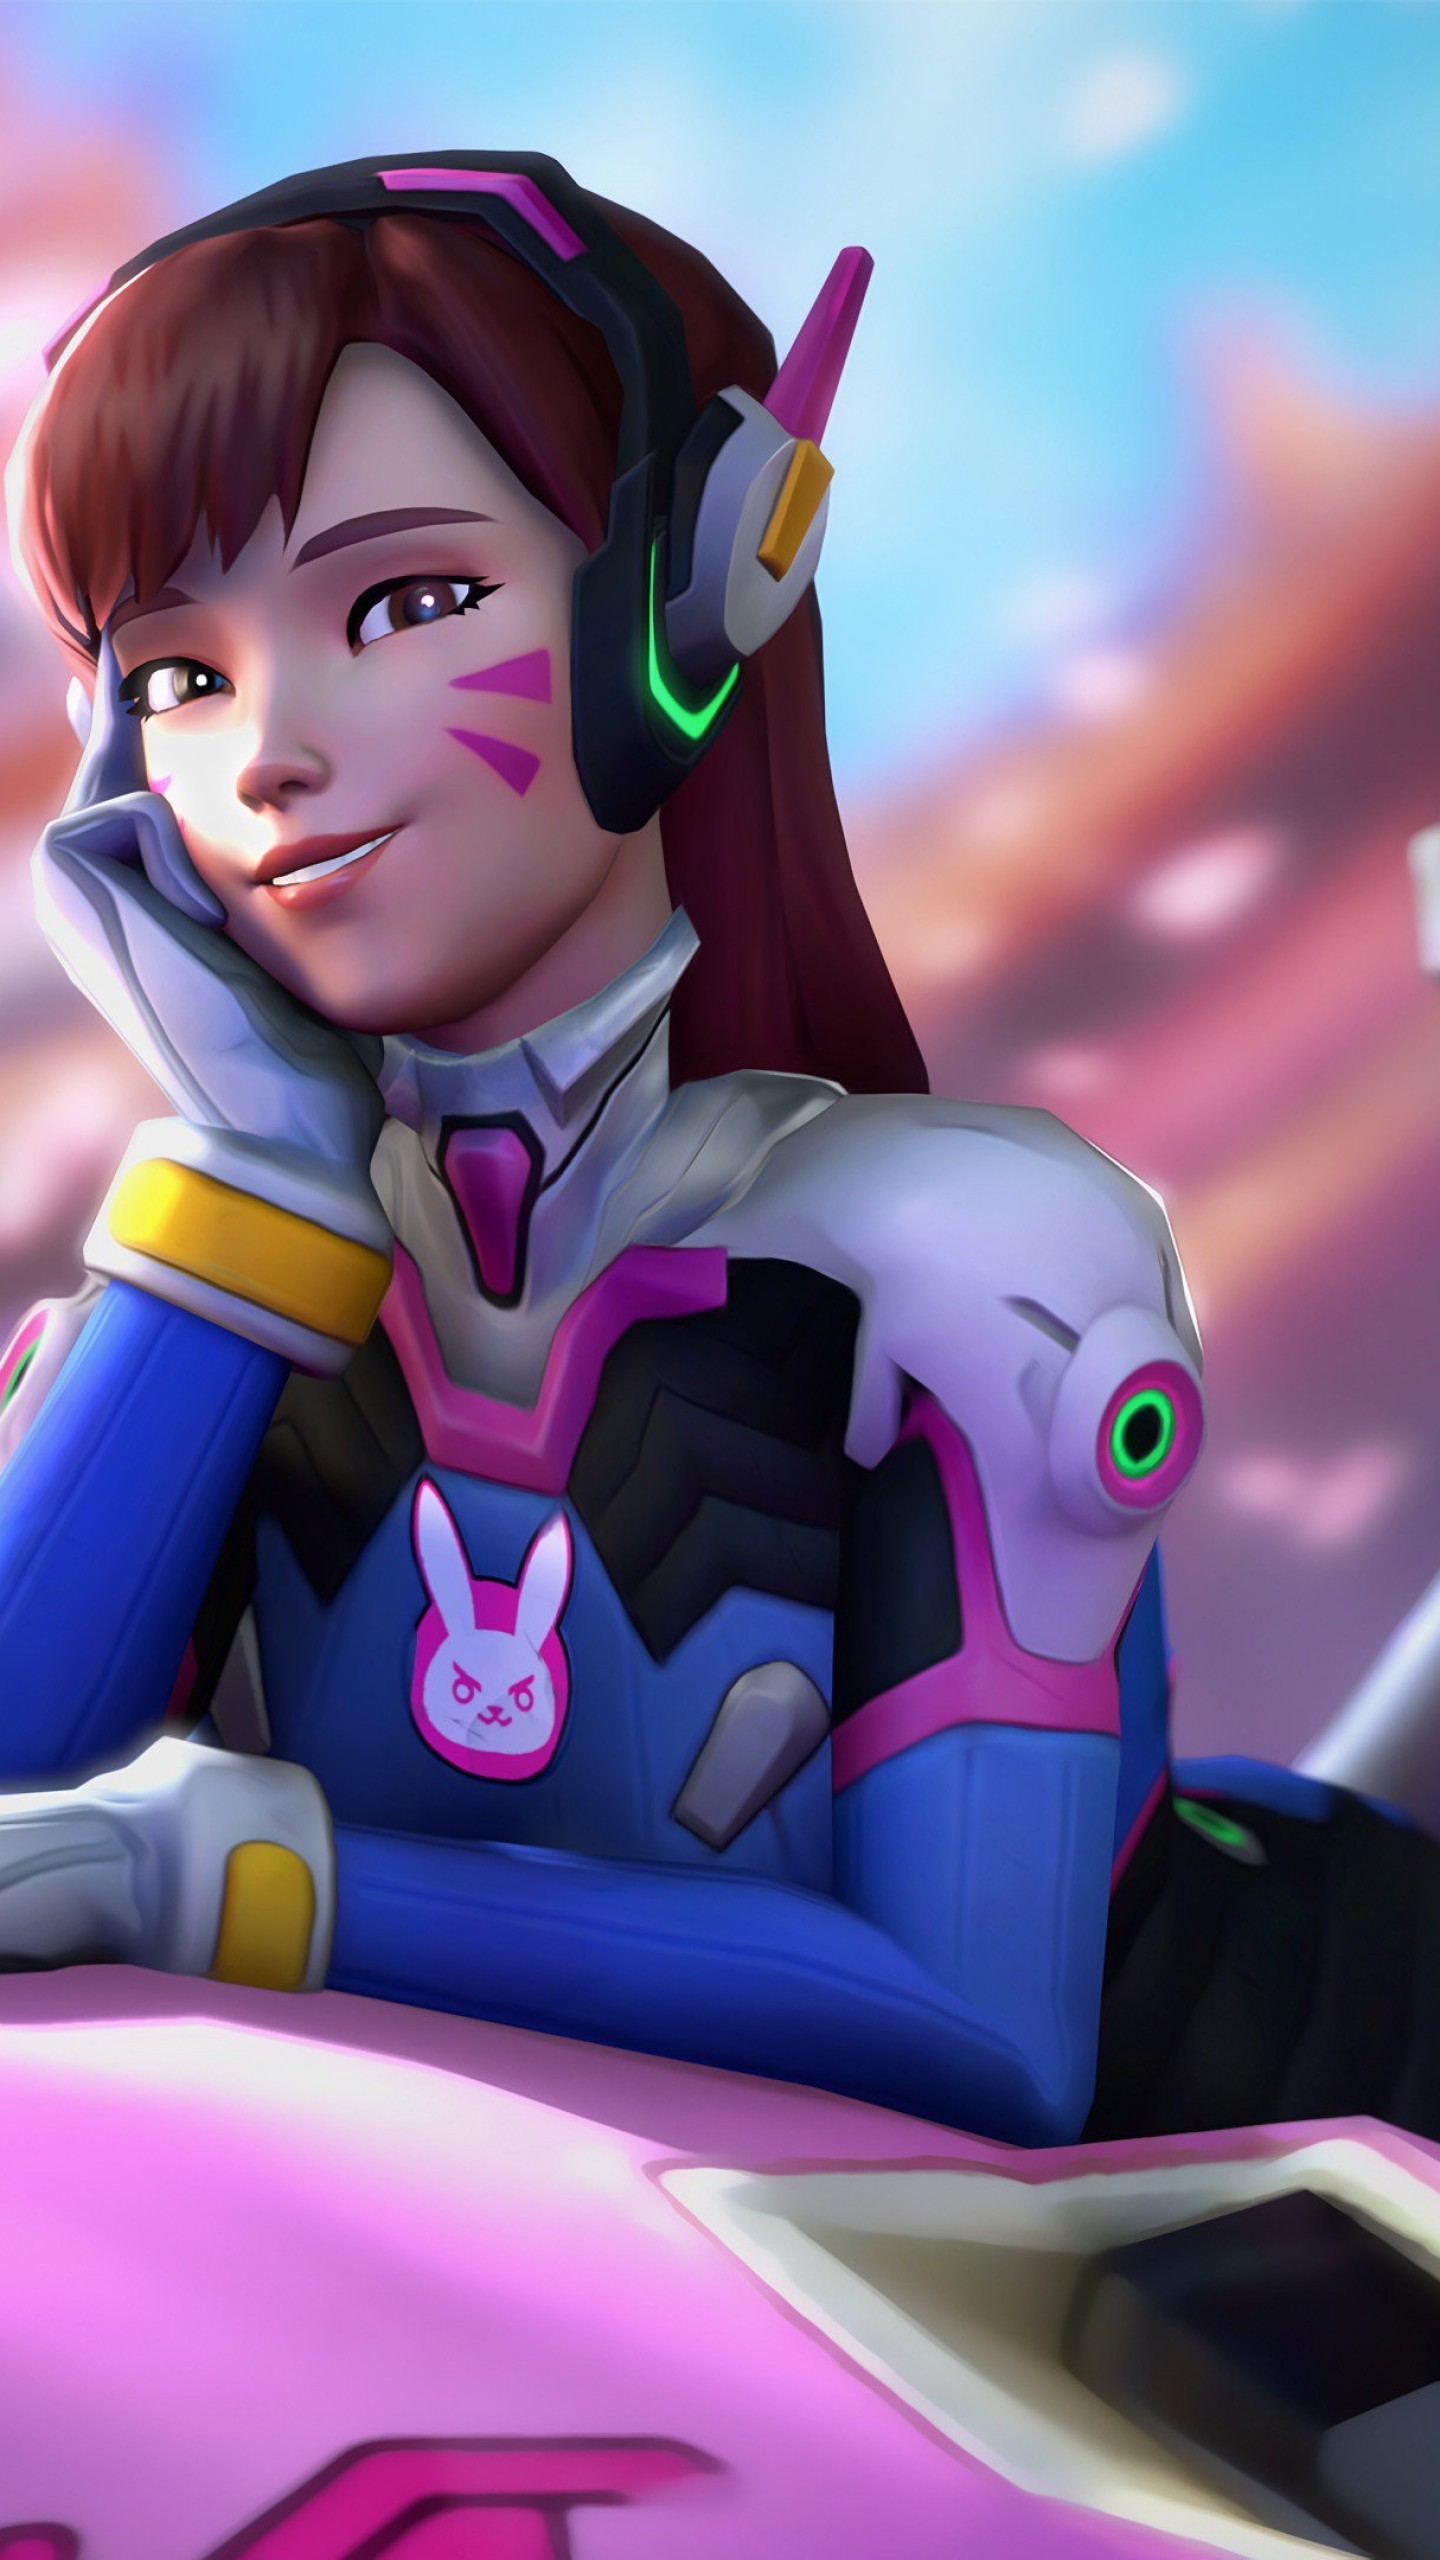 Hd Wallpaper Quotes For Android Wallpaper Dva Hd 4k Overwatch D Va Games 10276